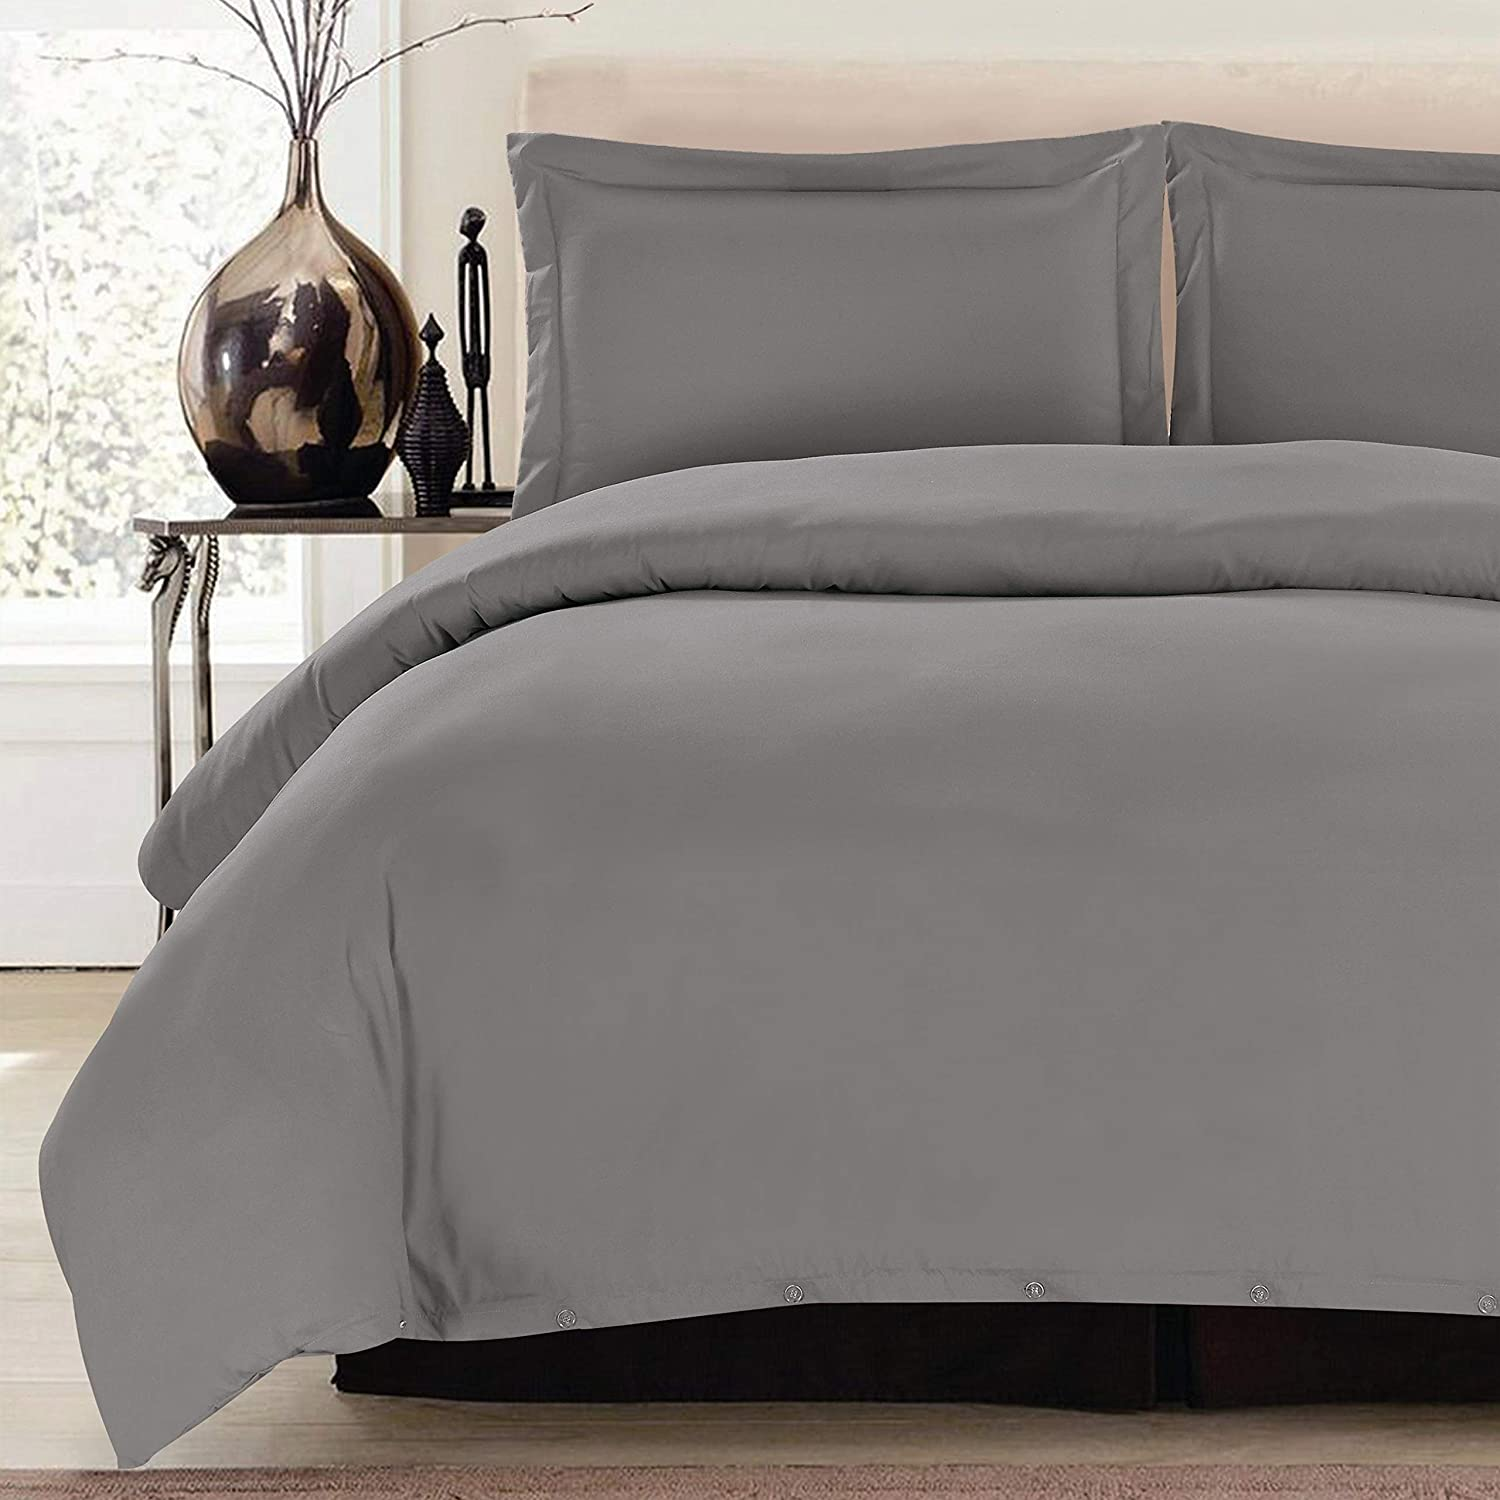 Lux Decor Collection Duvet Cover Set, 1800 Count Egyptian Quality King Soft Premium Bedding Collection, 3 Piece Luxury Soft, 2 Pillow Shams (Dark Grey, King/California King)